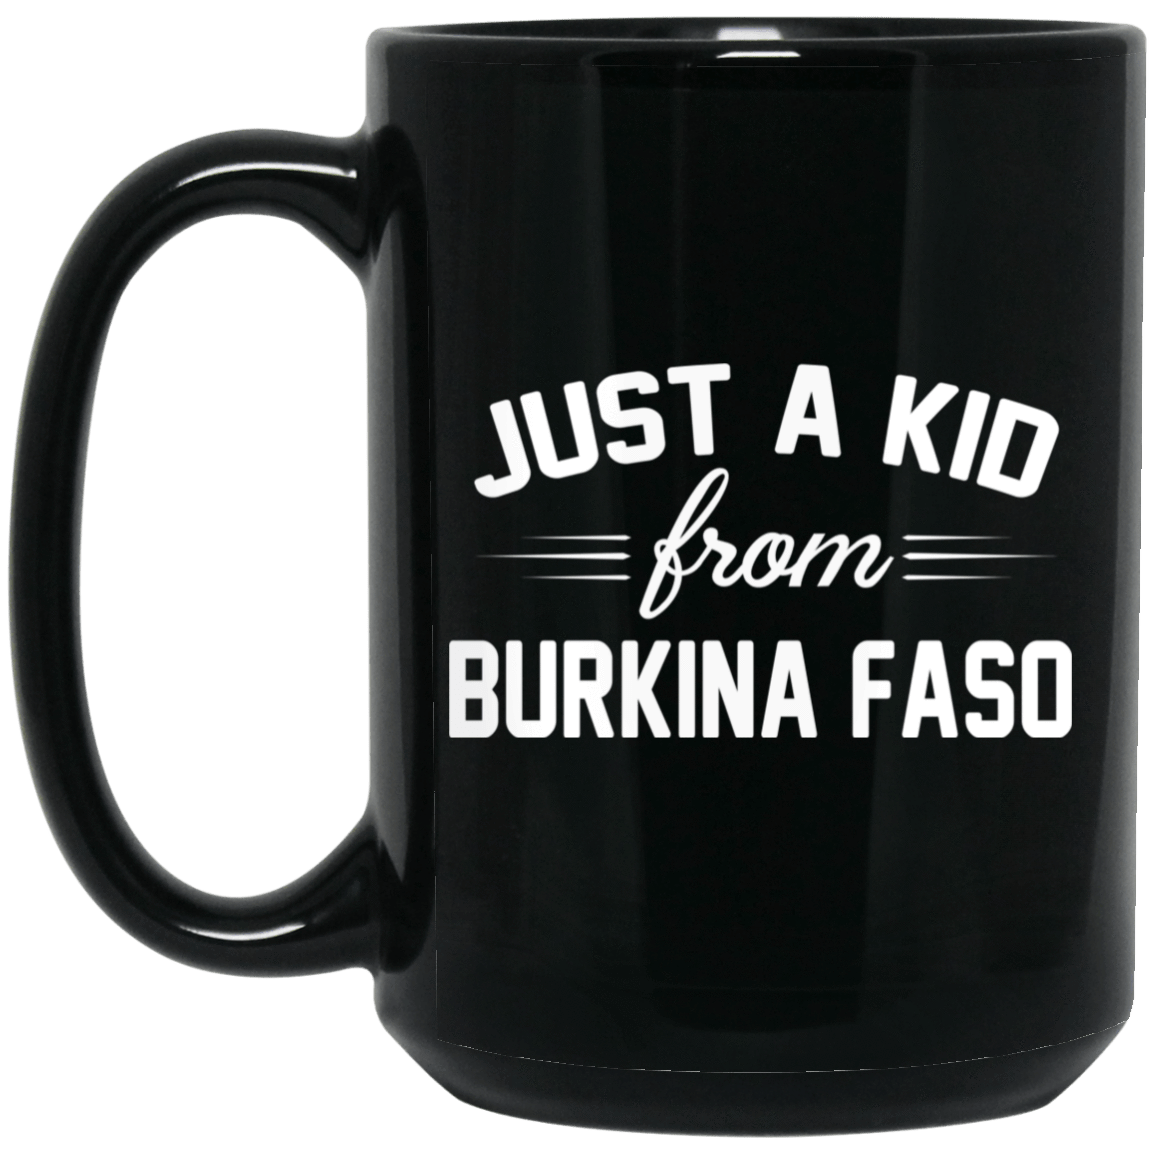 Just A Kid Store | Burkina Faso Mug 1066-10182-72111292-49311 - Tee Ript